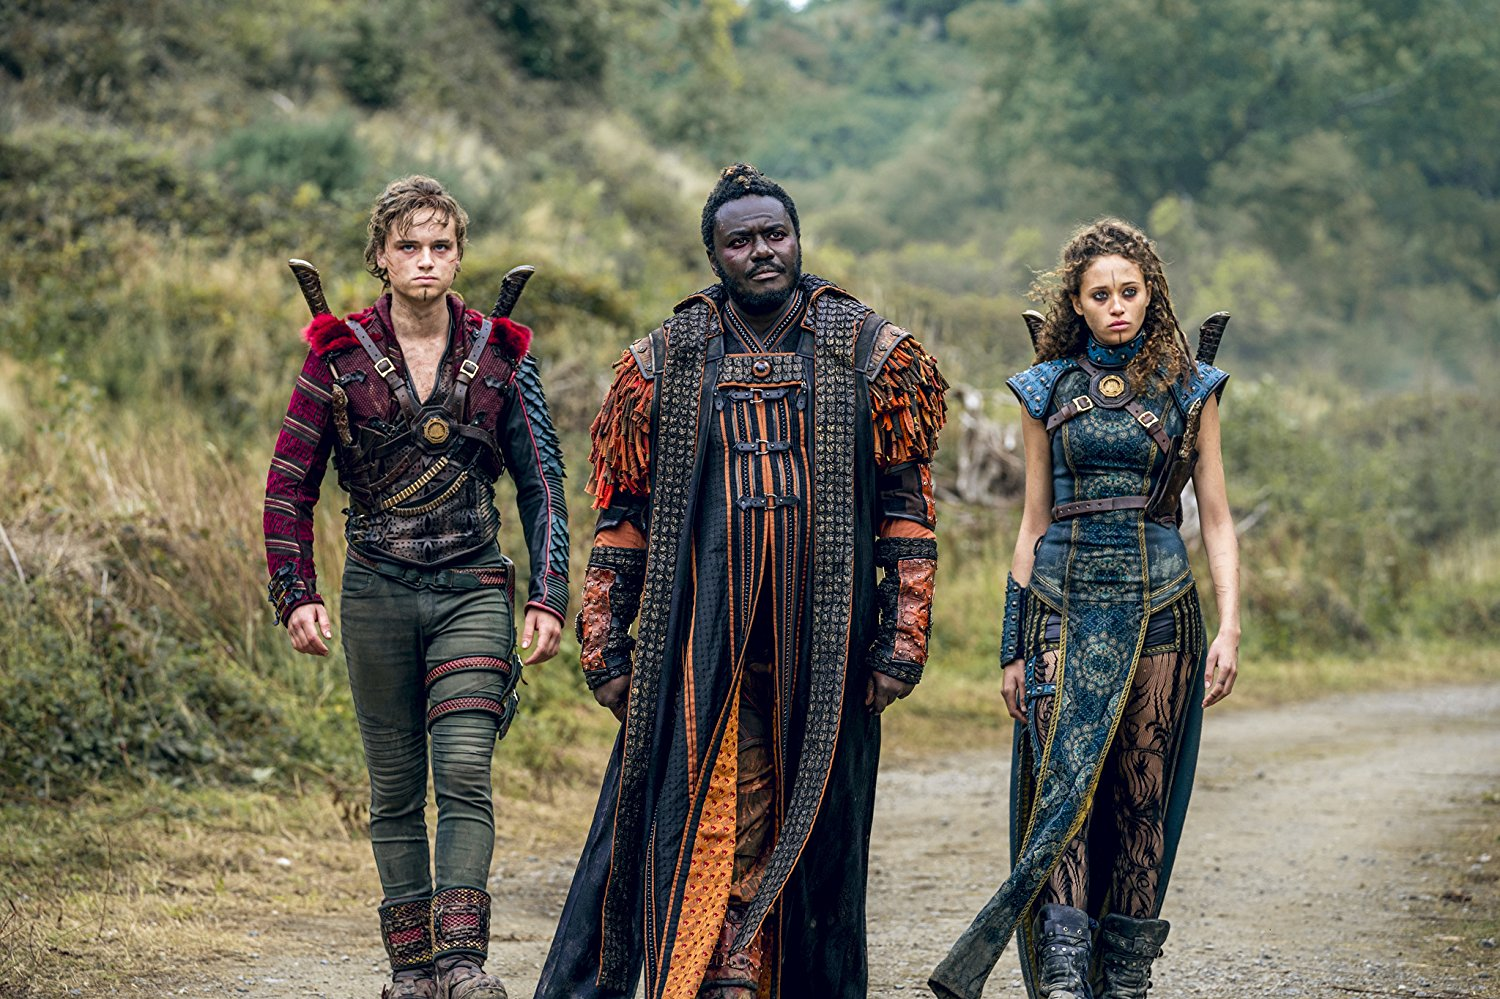 Babou Ceesay (center), Dean-Charles Chapman (left), and Ella-Rae Smith (right) in Into the Badlands